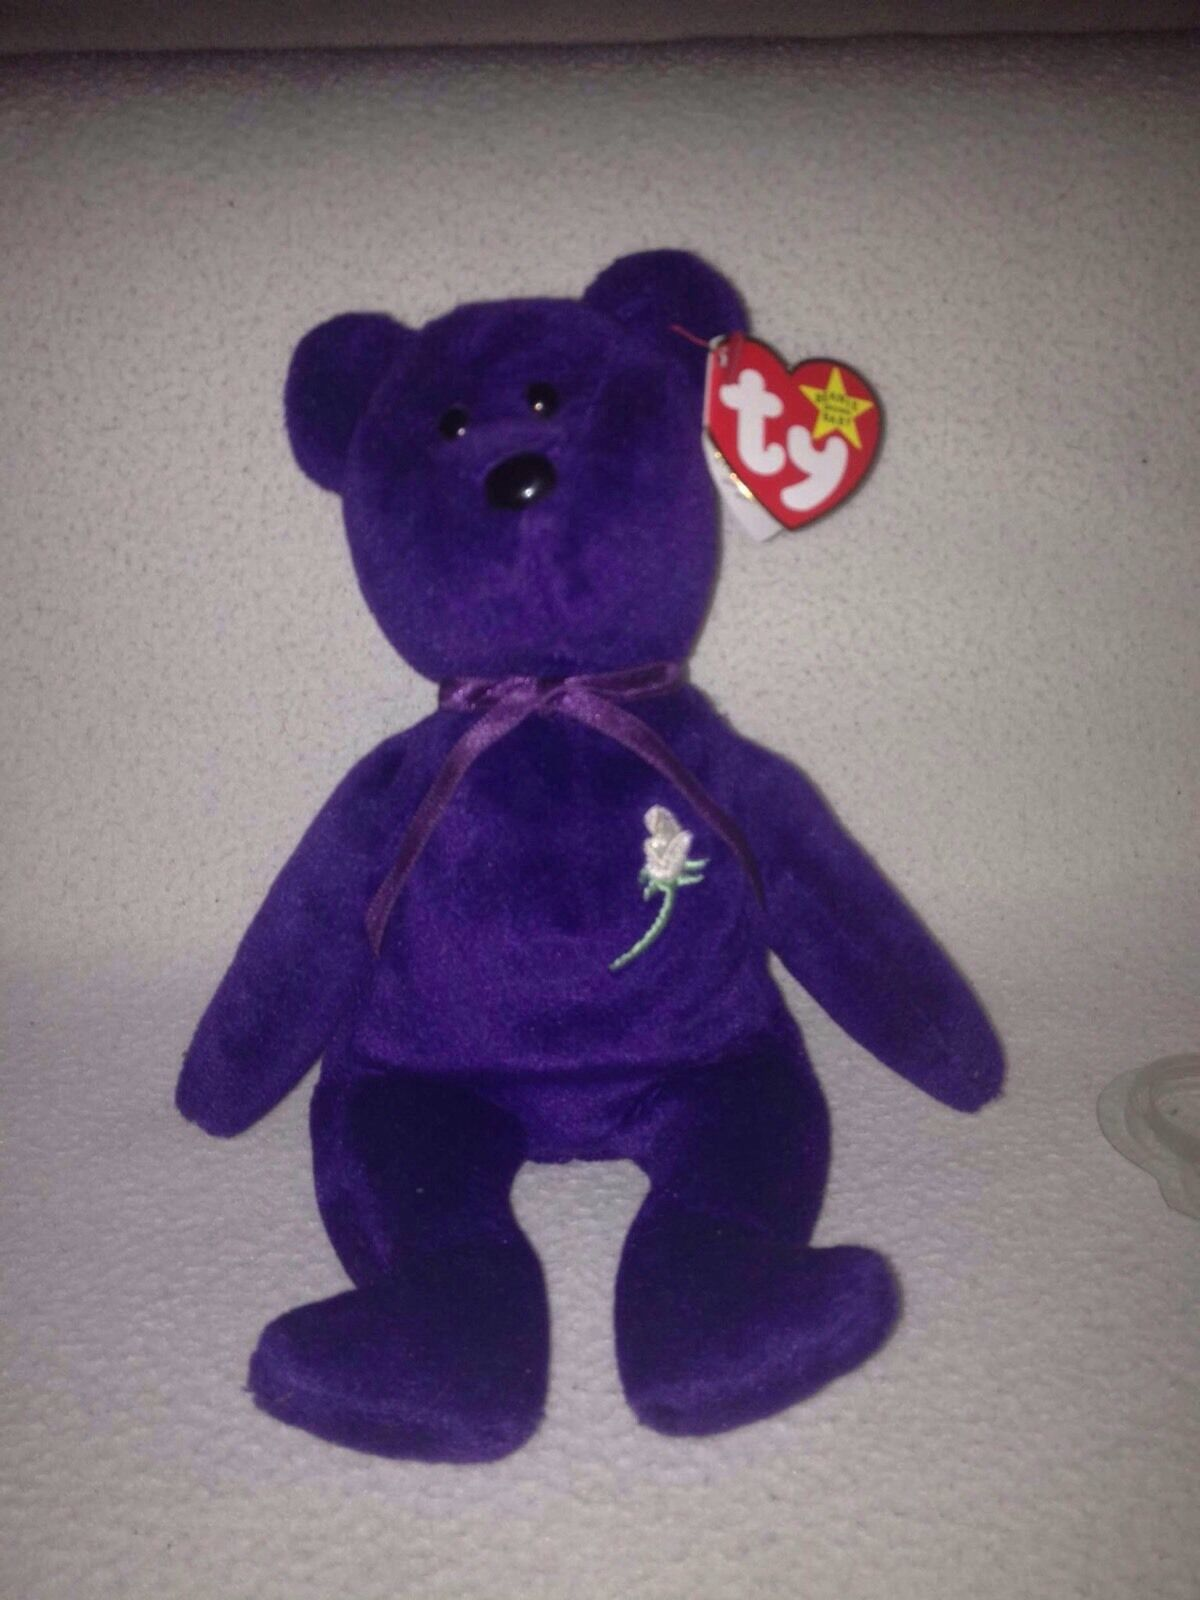 RARE 1st Edition Princess Diana Beanie Baby (The Real Deal) Super Rare.